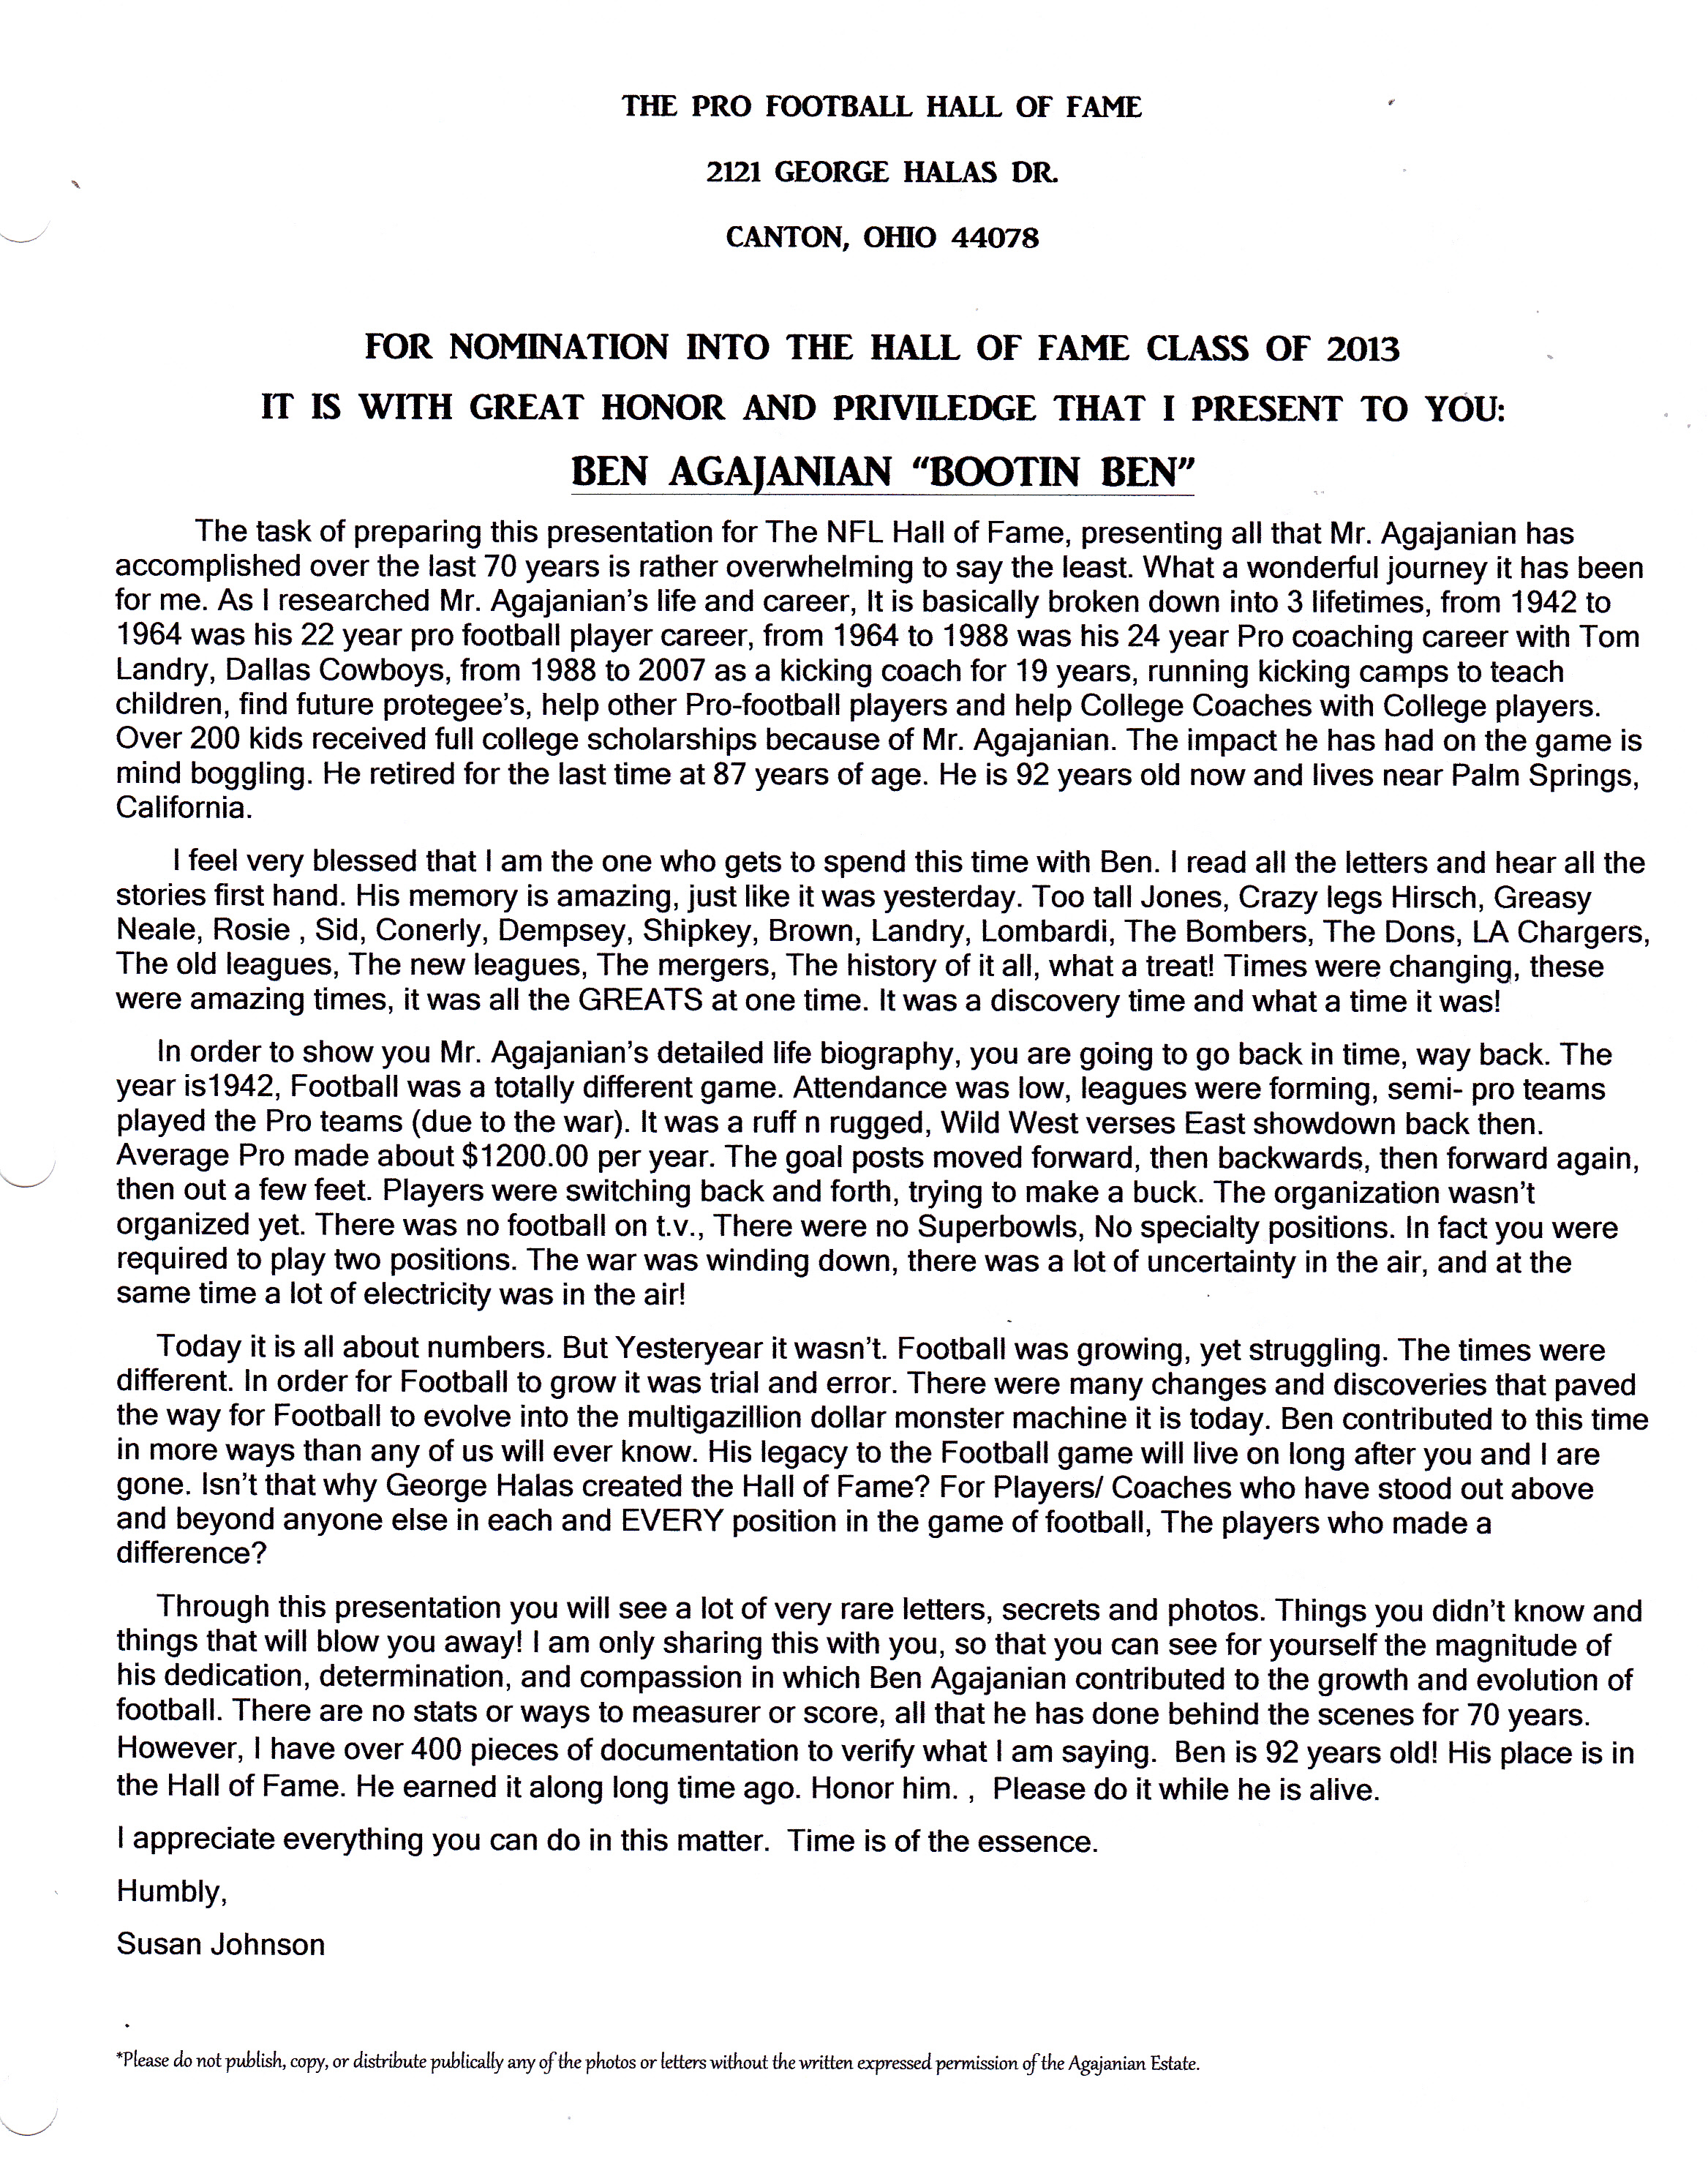 My letter to the HALL of Fame